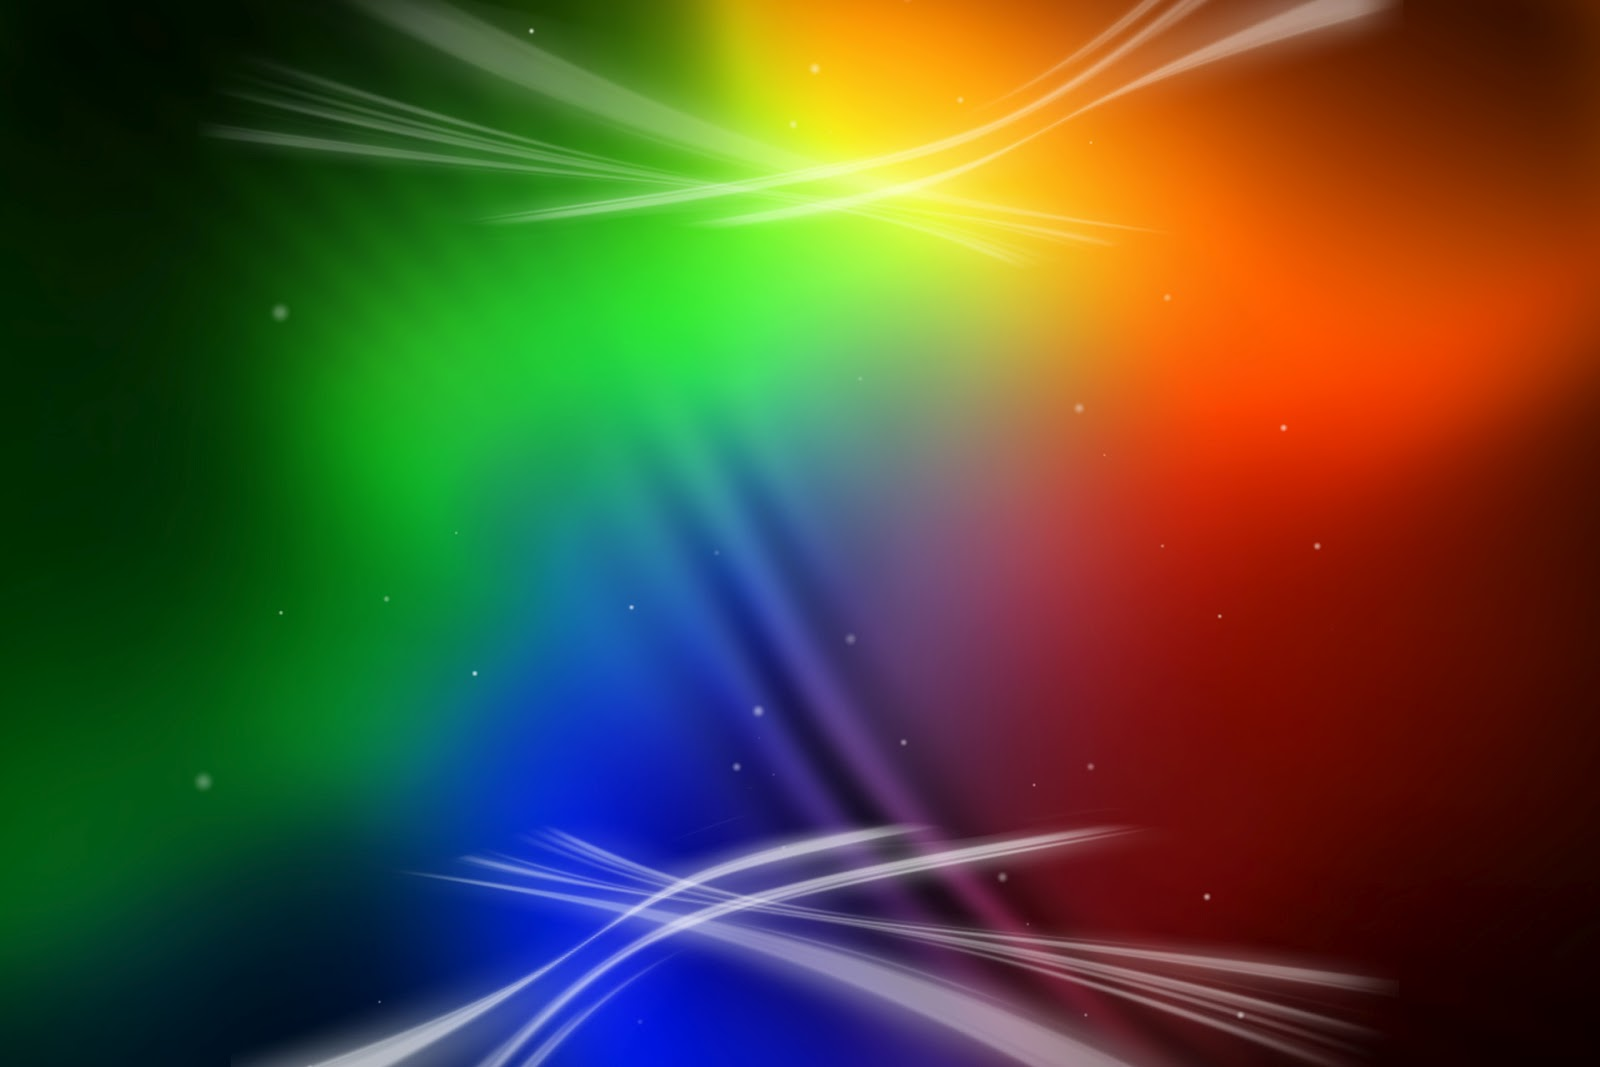 3d Live Wallpaper For Samsung Galaxy Core 2 Live Wallpaper On Android Free Download Wallpaper